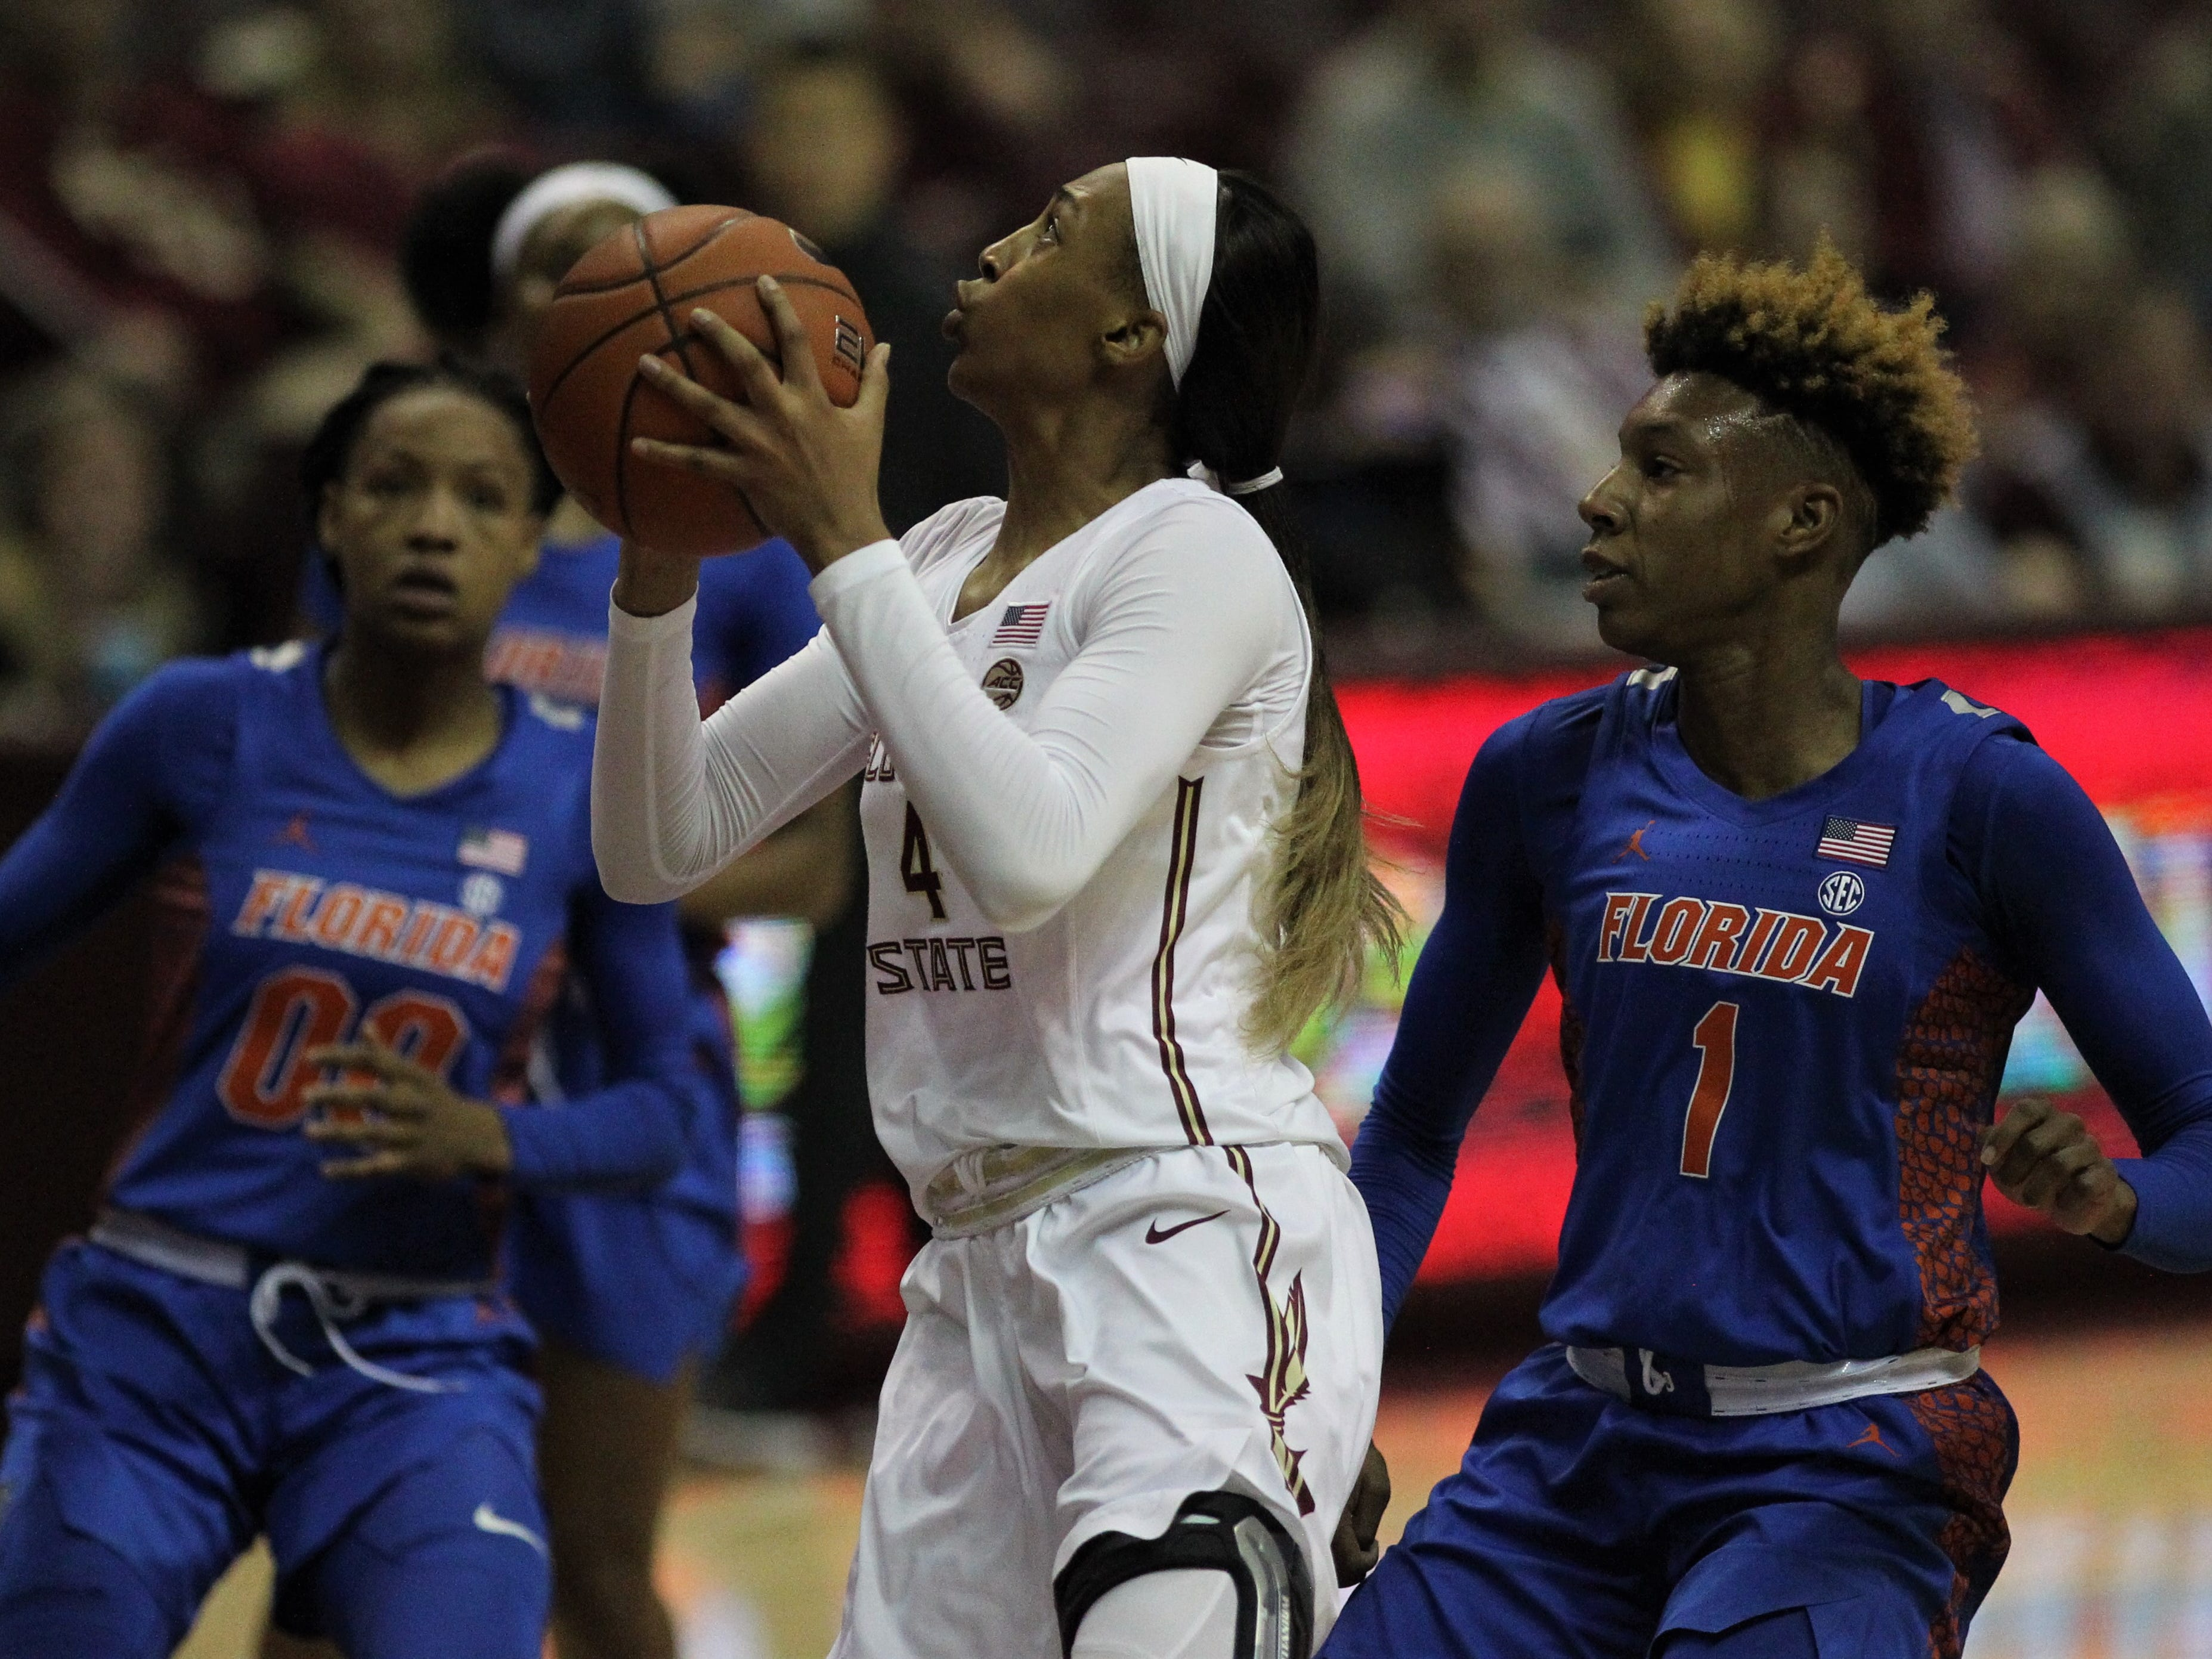 Florida State freshman Amaya Brown gues up for a layup during the first half of the Seminoles' game against Florida at the Tucker Civic Center on Nov. 11, 2018.